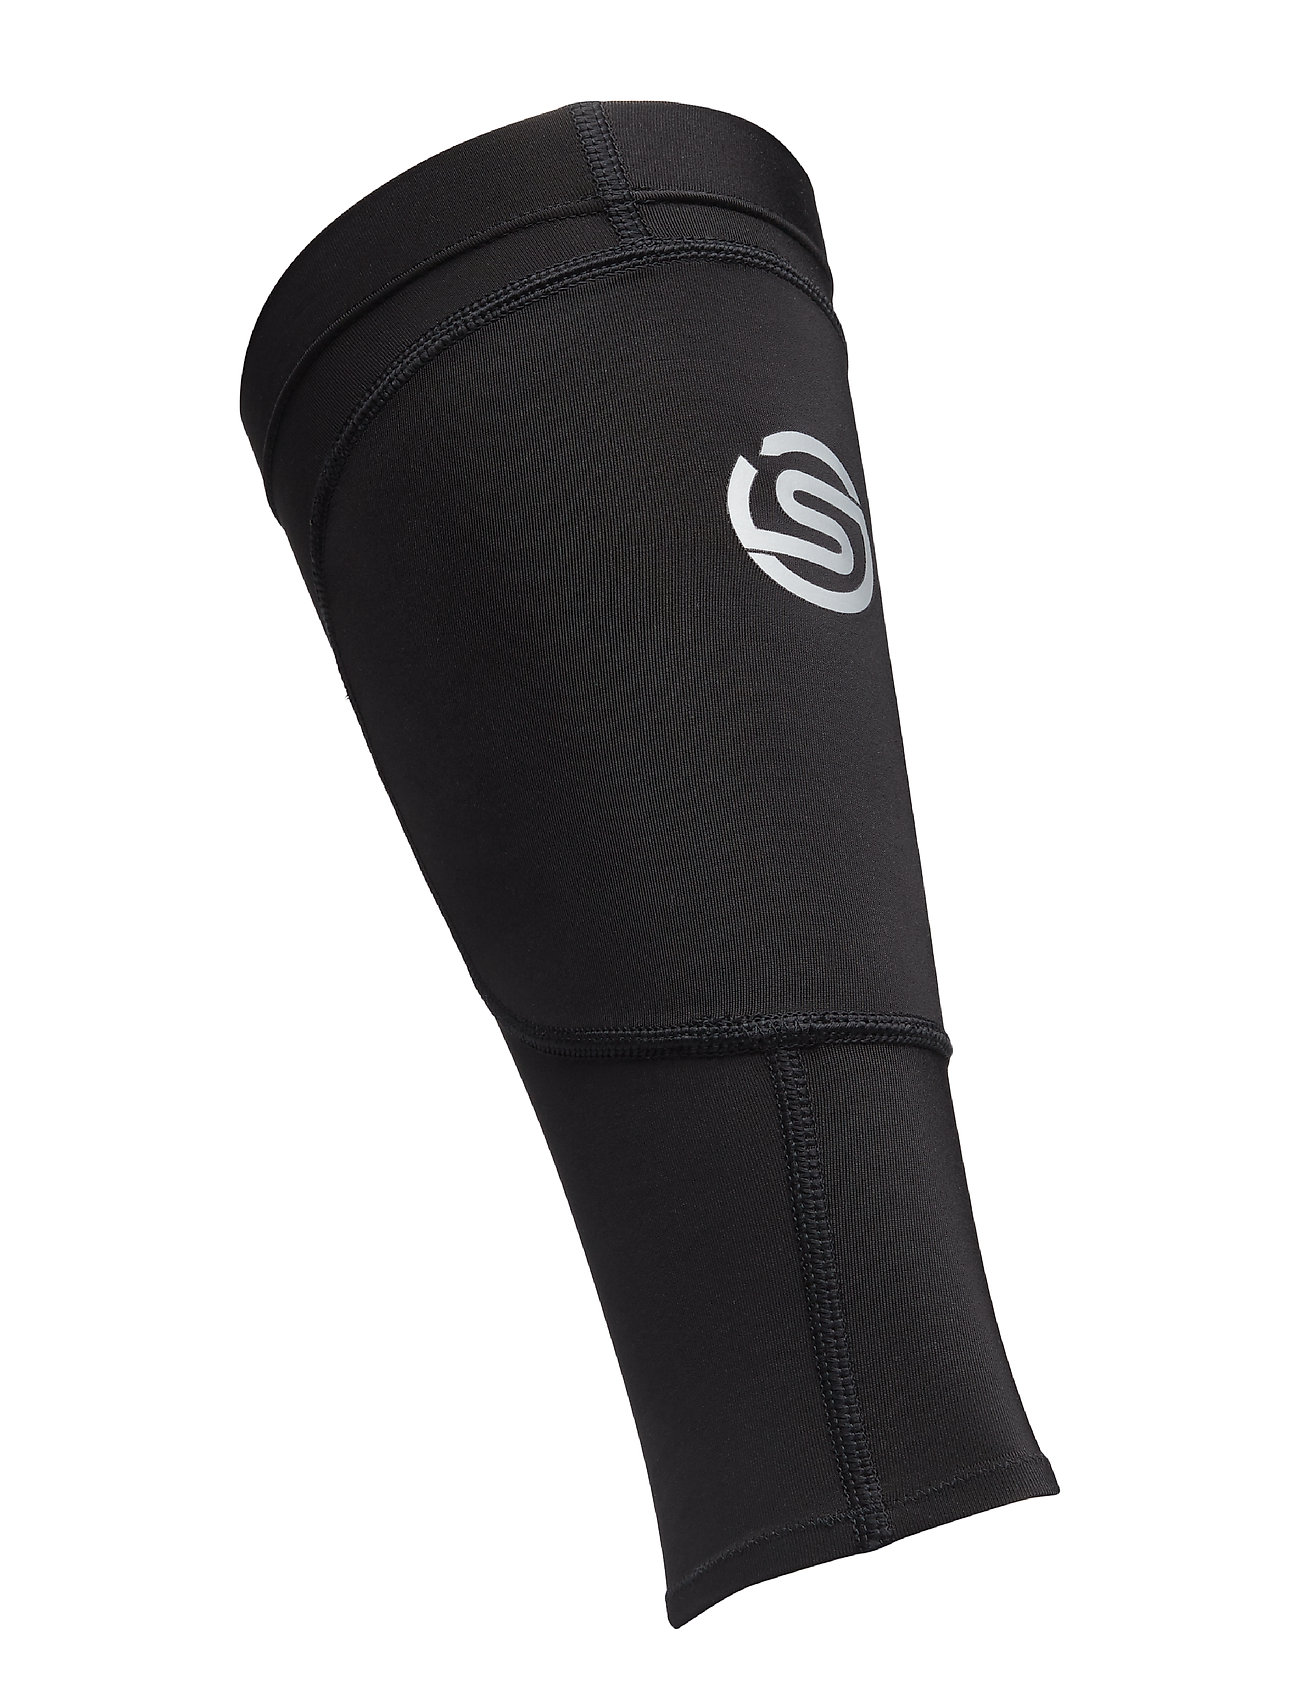 Sport Essentials Essentials CalftightsblackSkins Essentials CalftightsblackSkins Sport Sport Essentials CalftightsblackSkins Sport CalftightsblackSkins PiwTZukXO